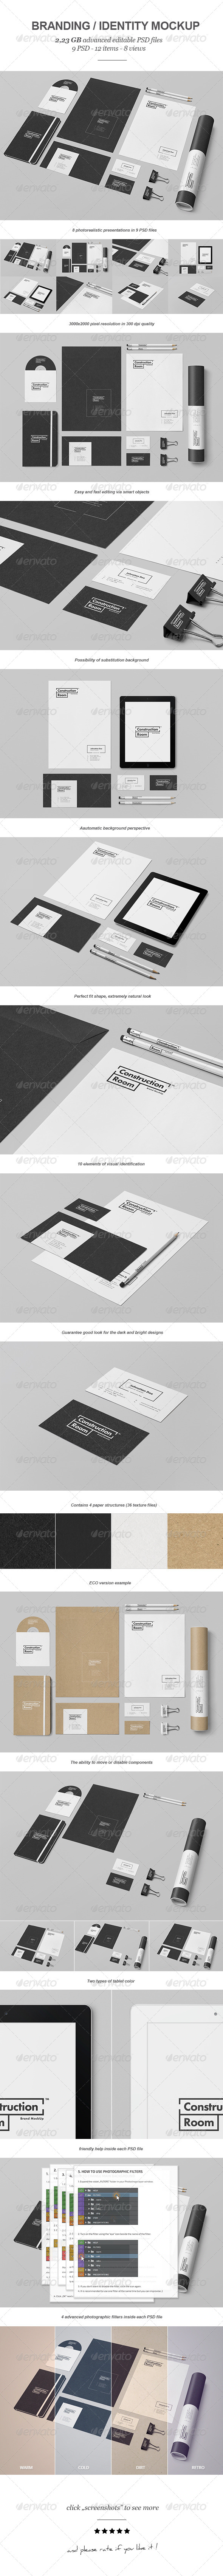 GraphicRiver Branding Identity Mock-up V 7685765